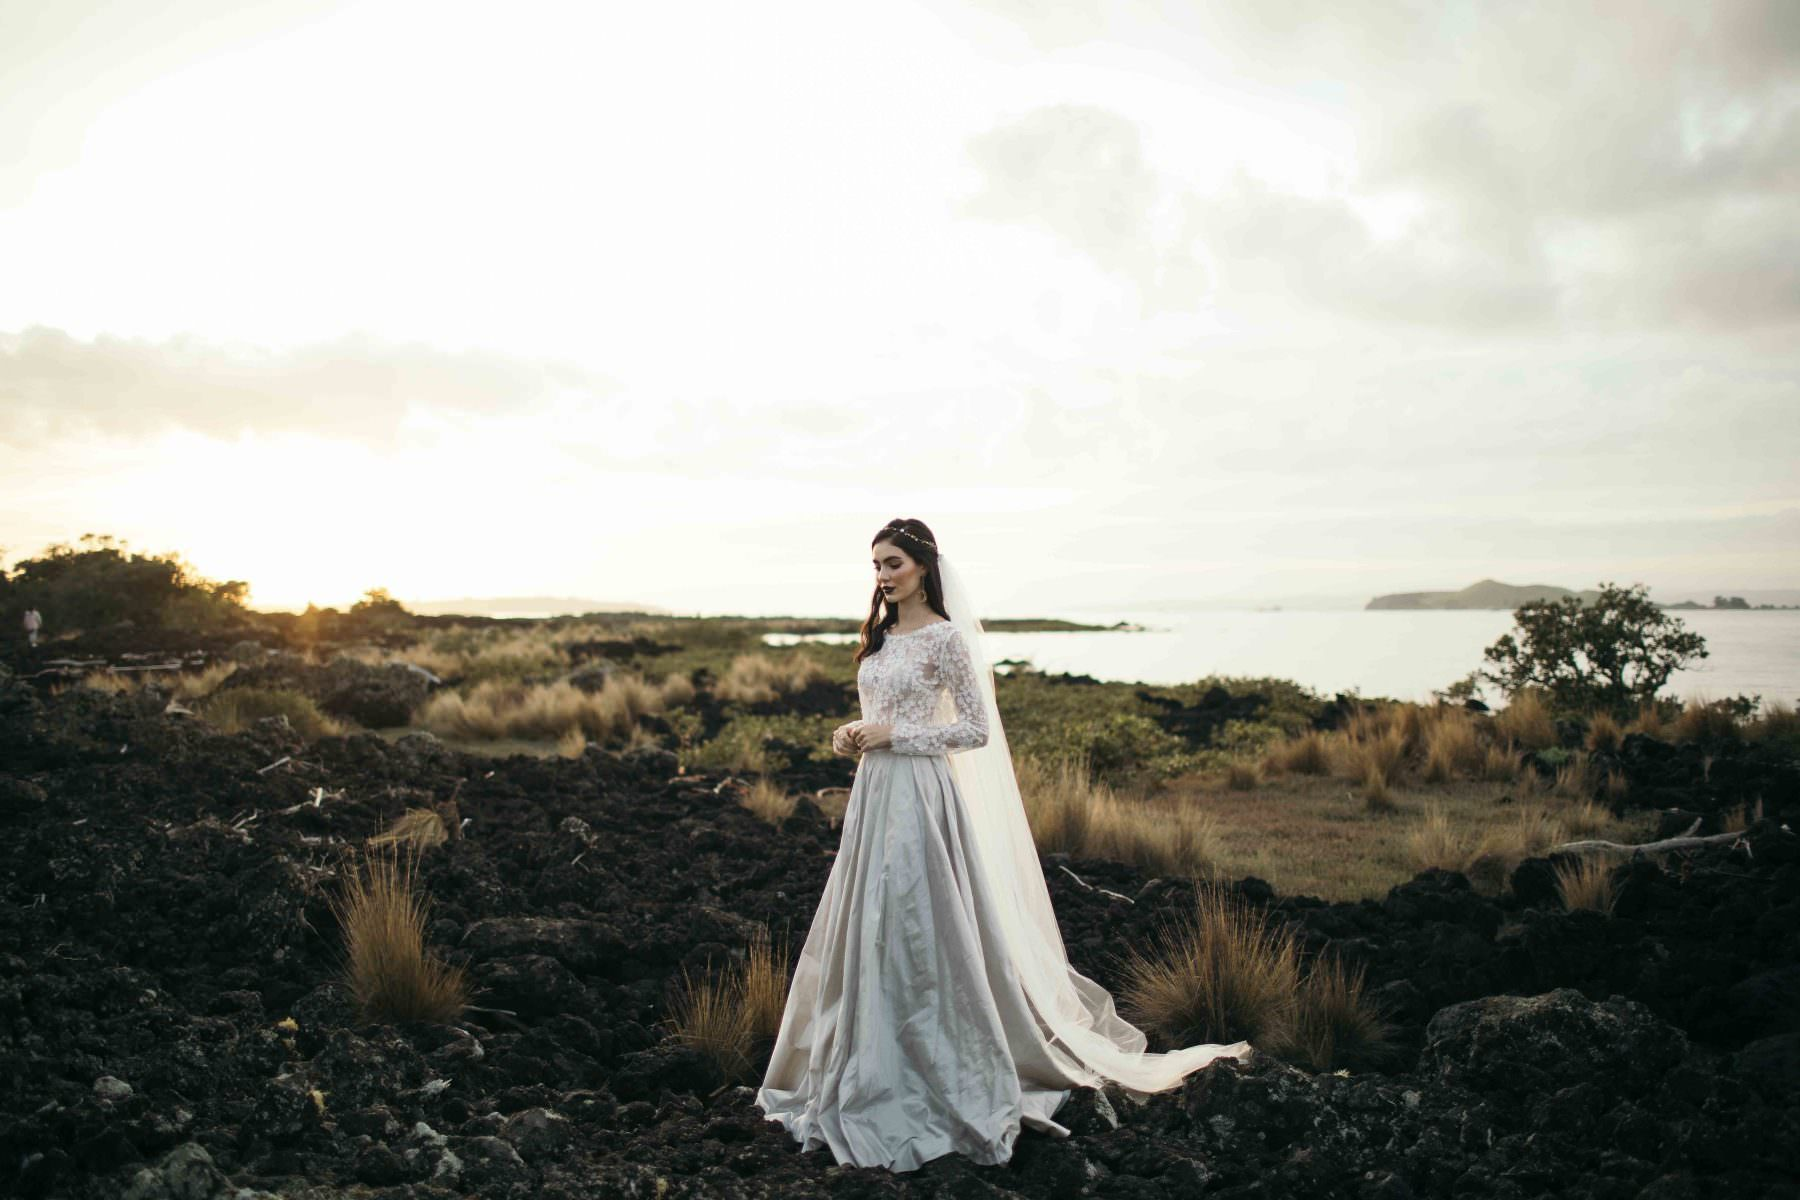 Natalie Chan Bridal Audrey wedding dress bridal shop store gowns christchurch wellington